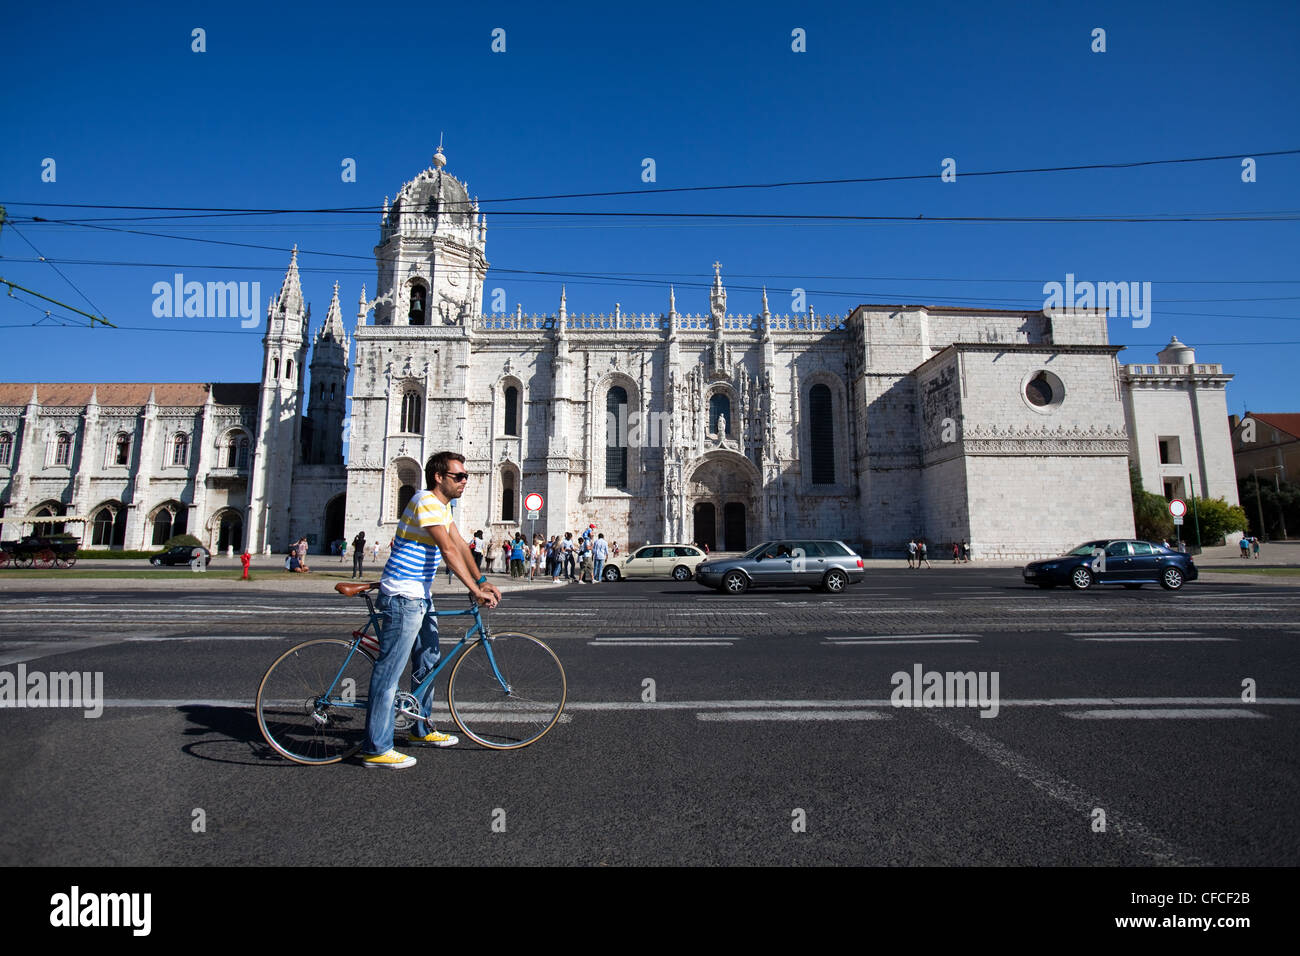 A cyclist standing in front of the Jeronimos Monastery in Lisbon, Portugal. - Stock Image